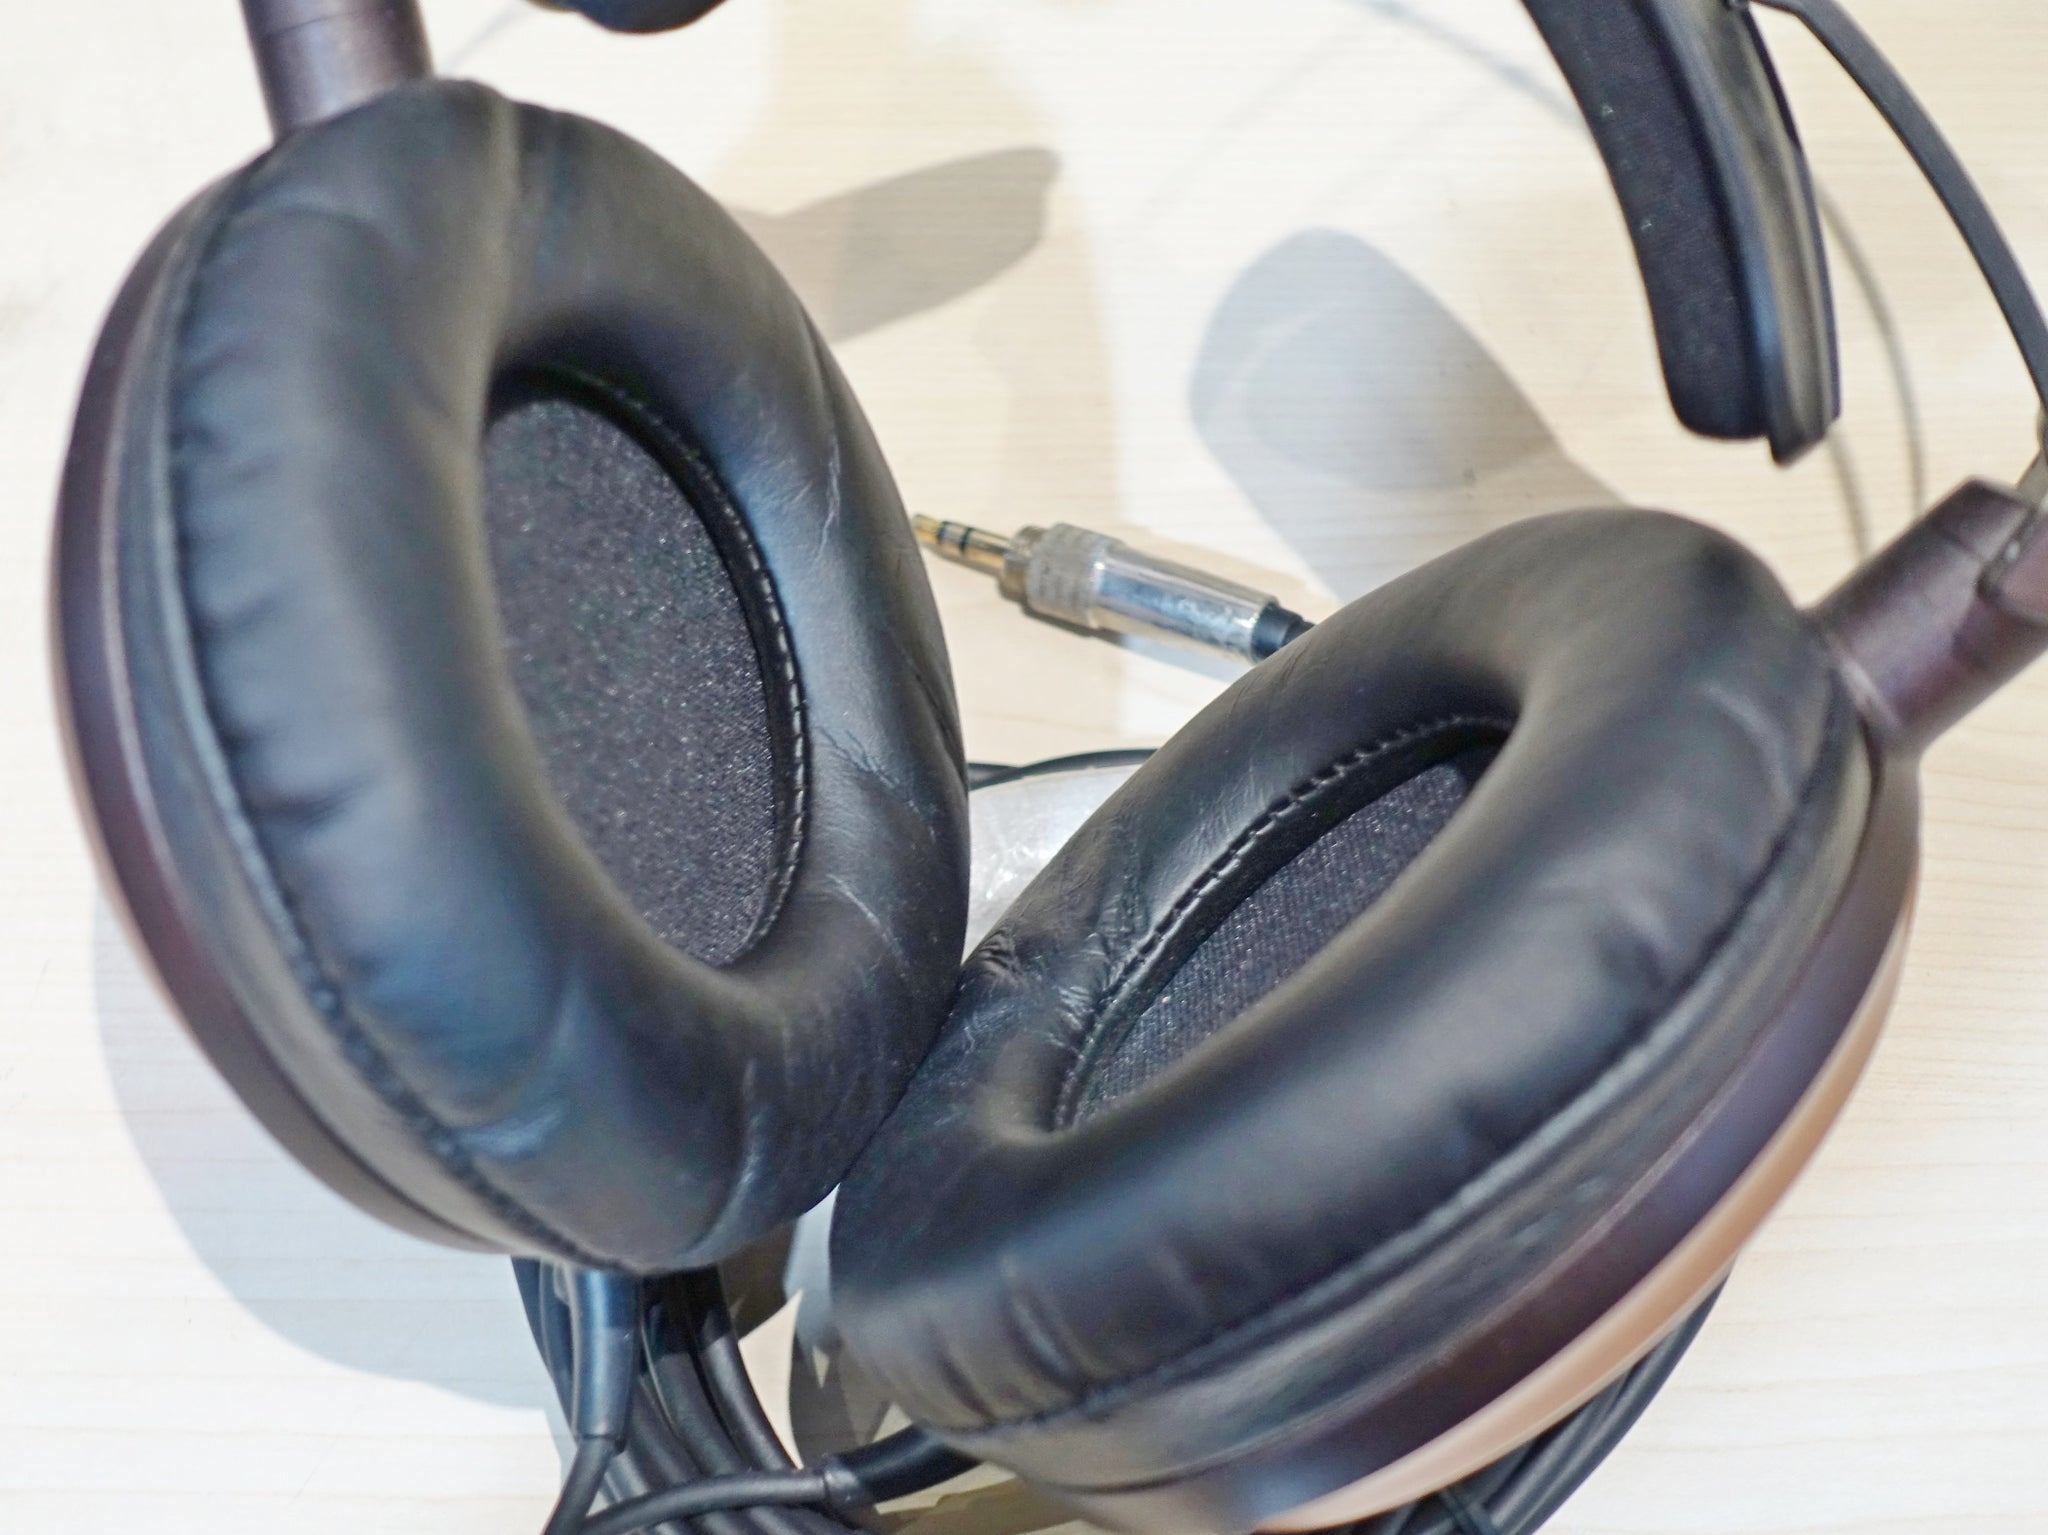 Audio Technica ATH-A1000X Demo (SS15) - Jaben - The Little Headphone Store